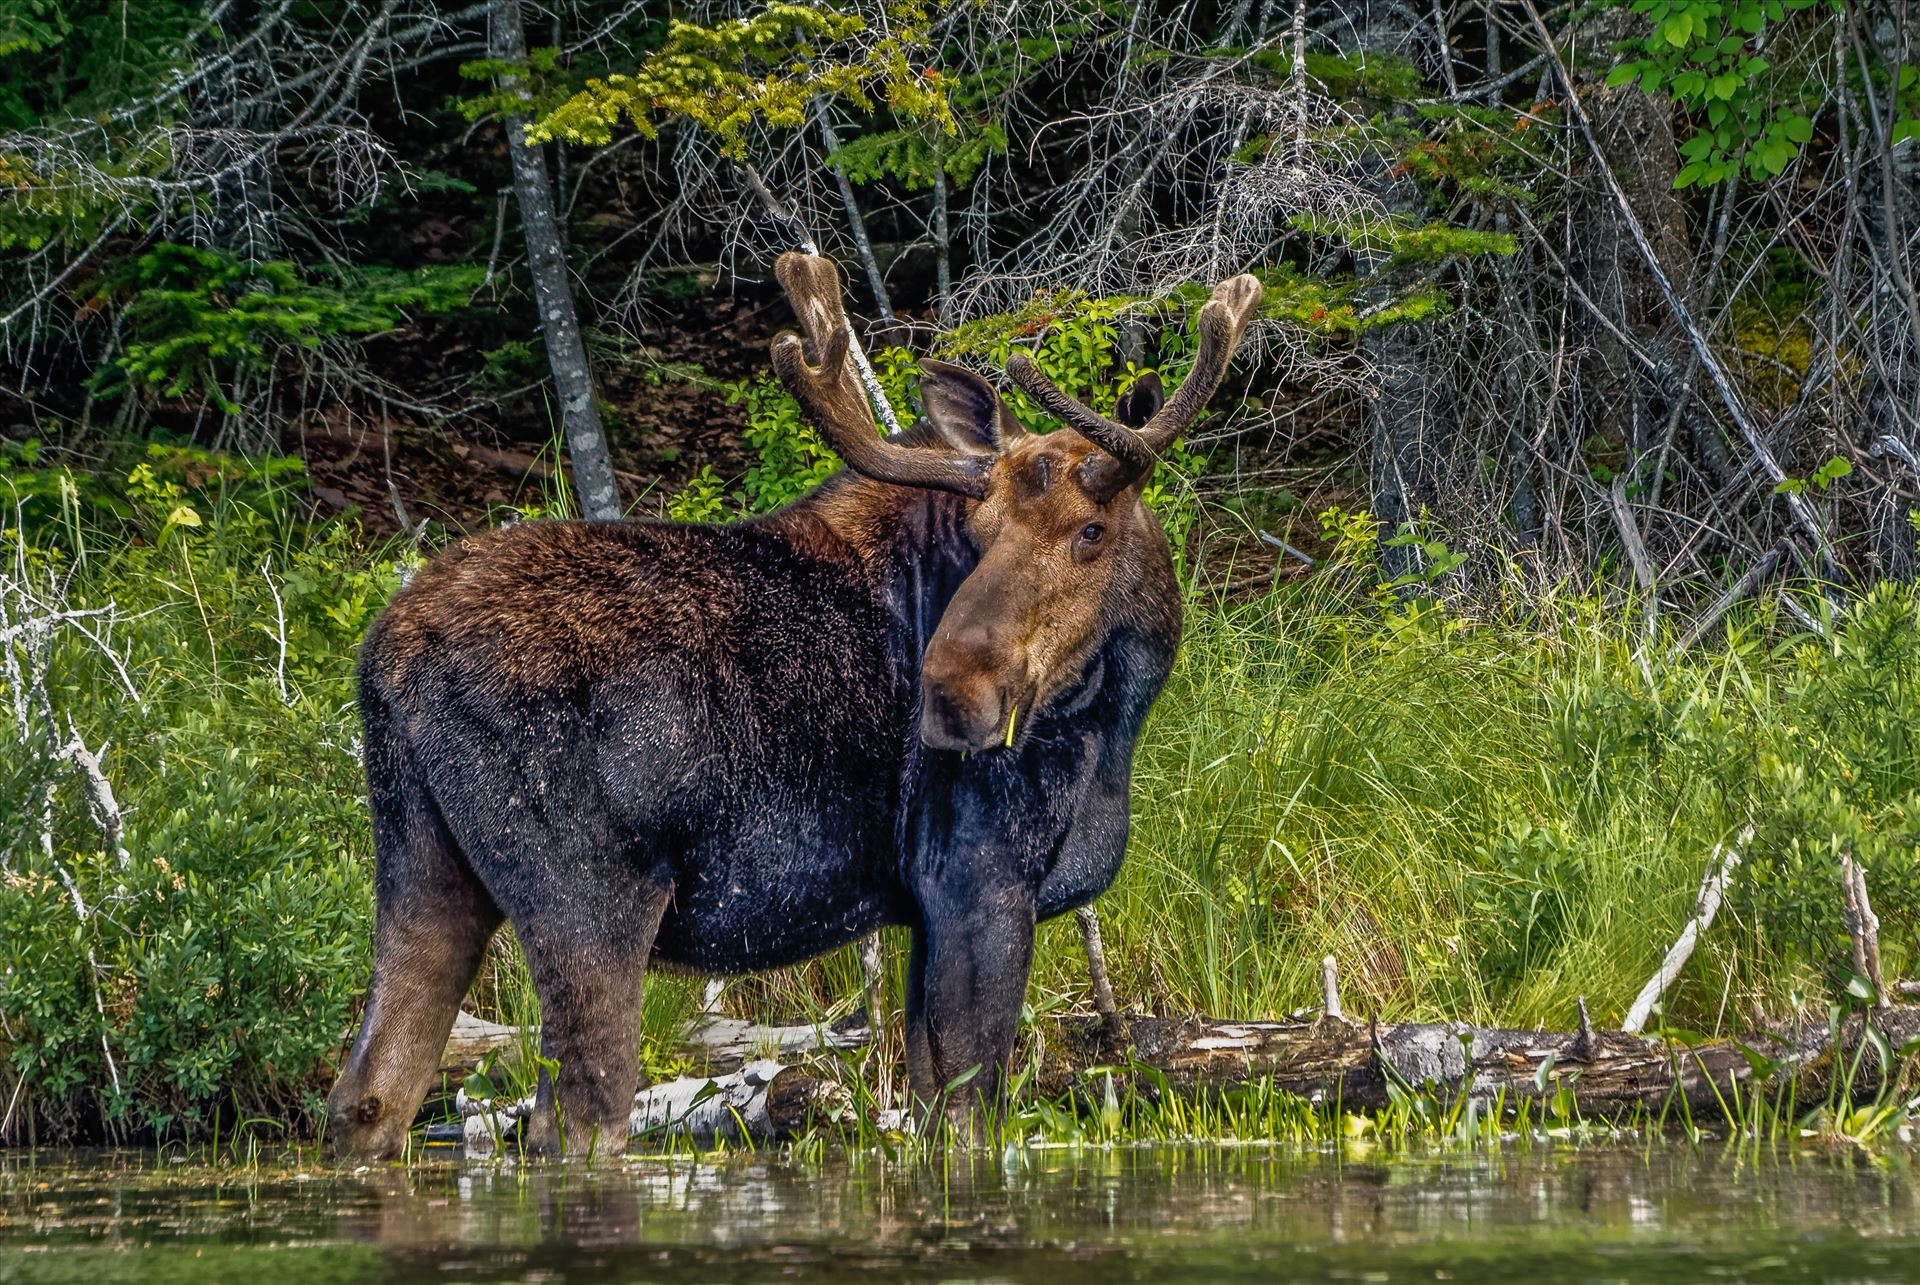 Bull Moose - Taken in June 2015 in Northern Maine, USA by Buckmaster